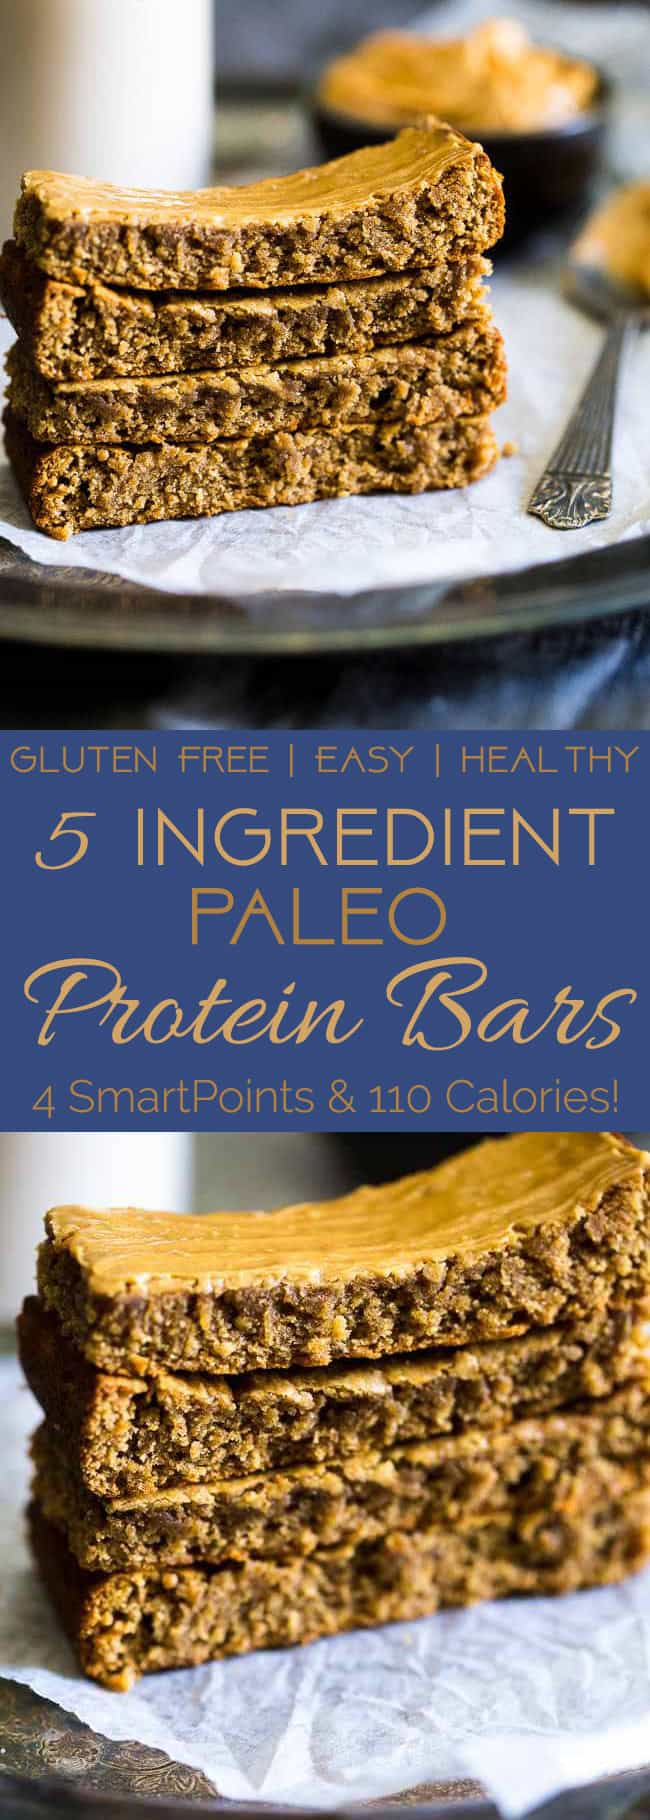 Paleo Protein Bar Recipe - 5 ingredients, one bowl and 20 minutes is all you need to make these soft and chewy bars! The a healthy, portable snack! | Foodfaithfitness.com | @FoodFaithFit | low carb paleo protein bars. homemade paleo protein bars. clean eating paleo protein bars. paleo snacks. easy paleo protein bars. Easy protein bars. gluten free protein bars. post work protein bars. protein bars recipe.